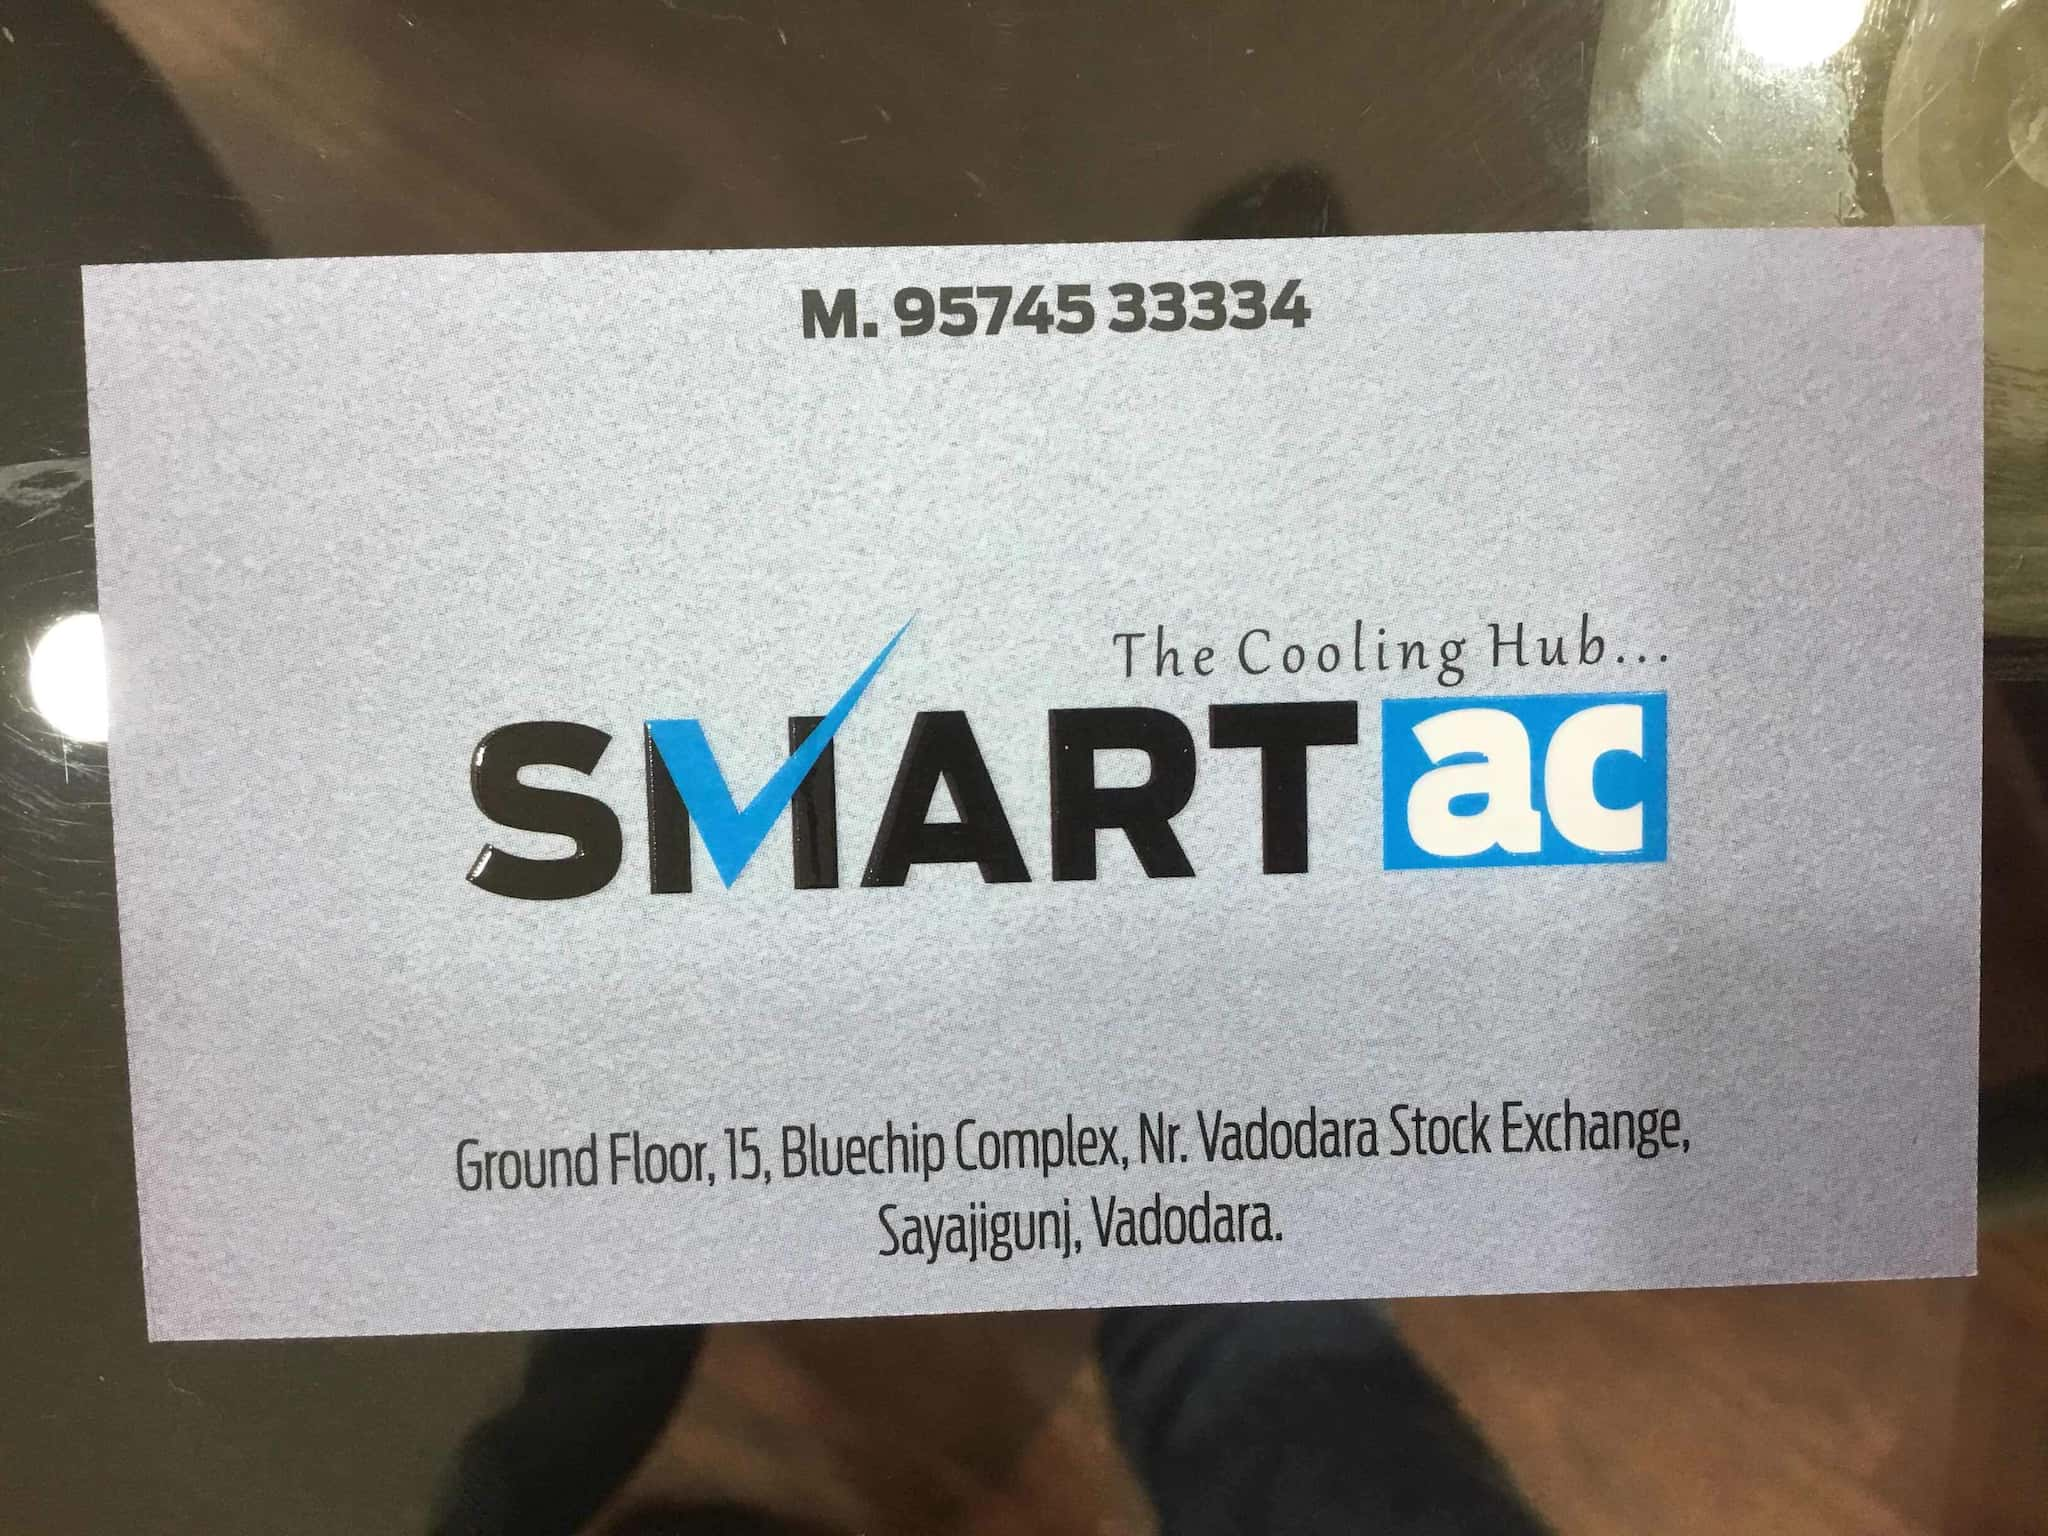 Smart Ac Photos, Sayaji Ganj, Vadodara- Pictures & Images Gallery